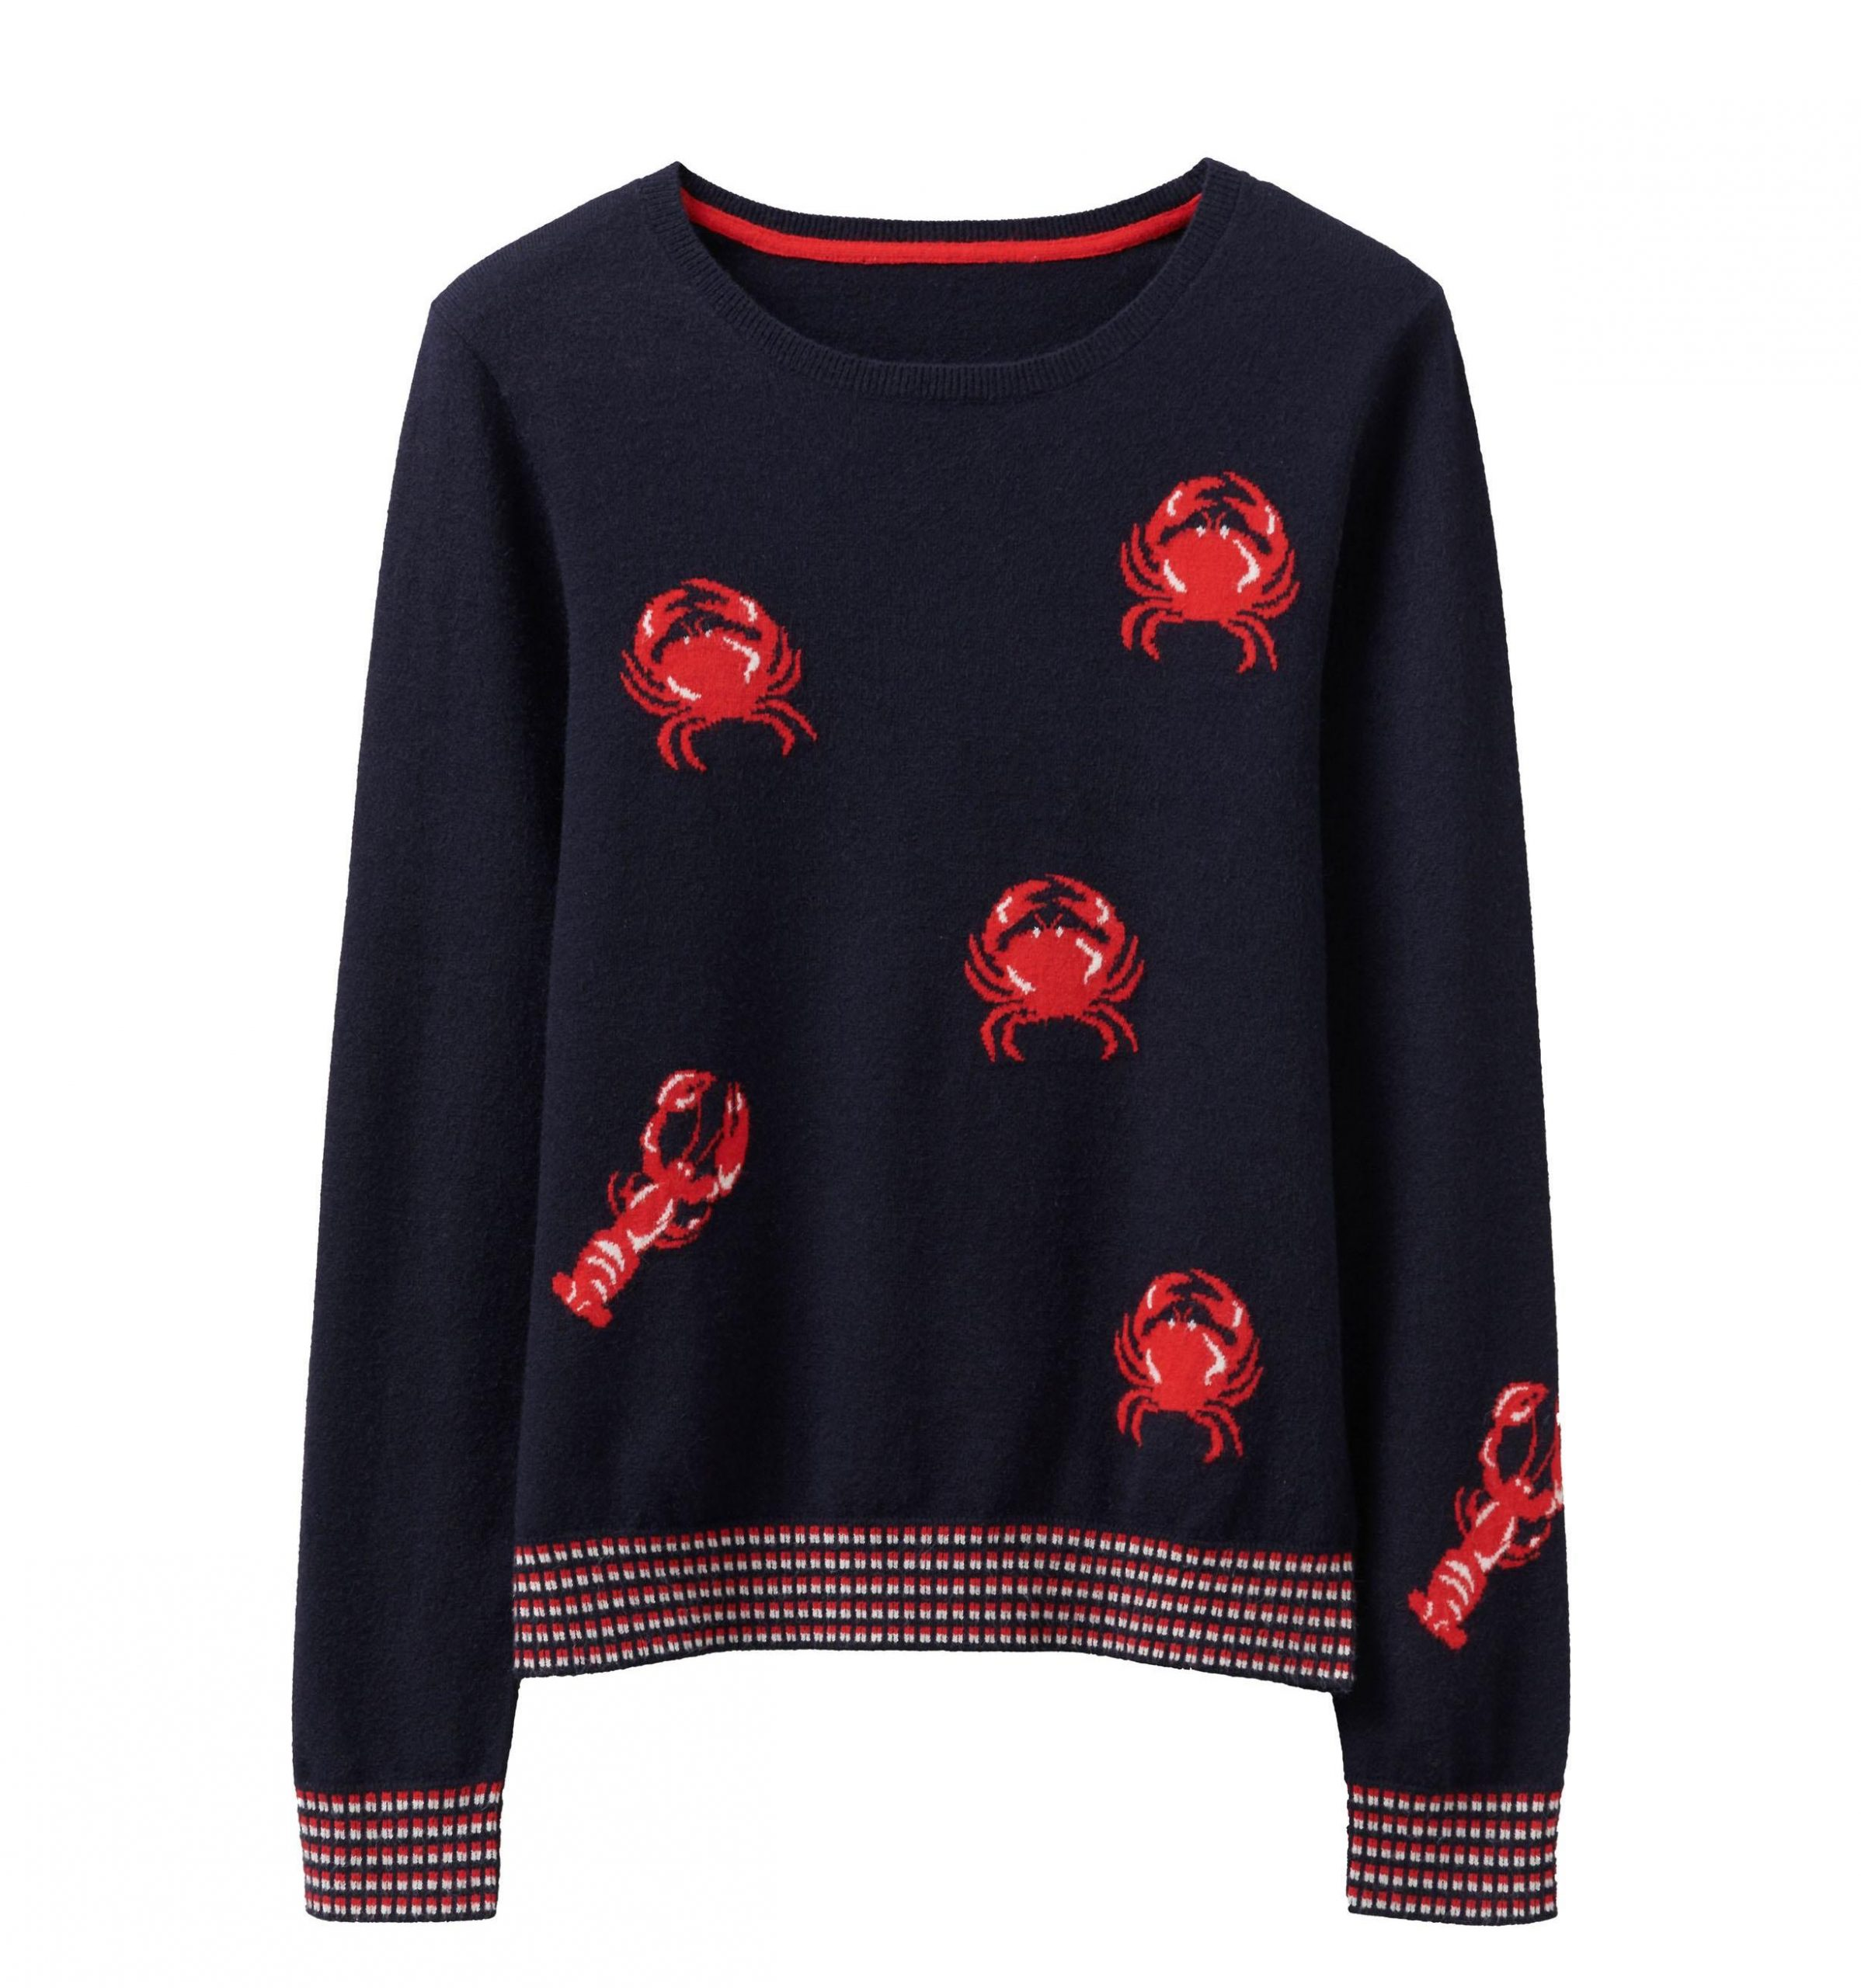 Staycation_Jumper_Crew_clothing_Cruise_Blondes_lobster_crab